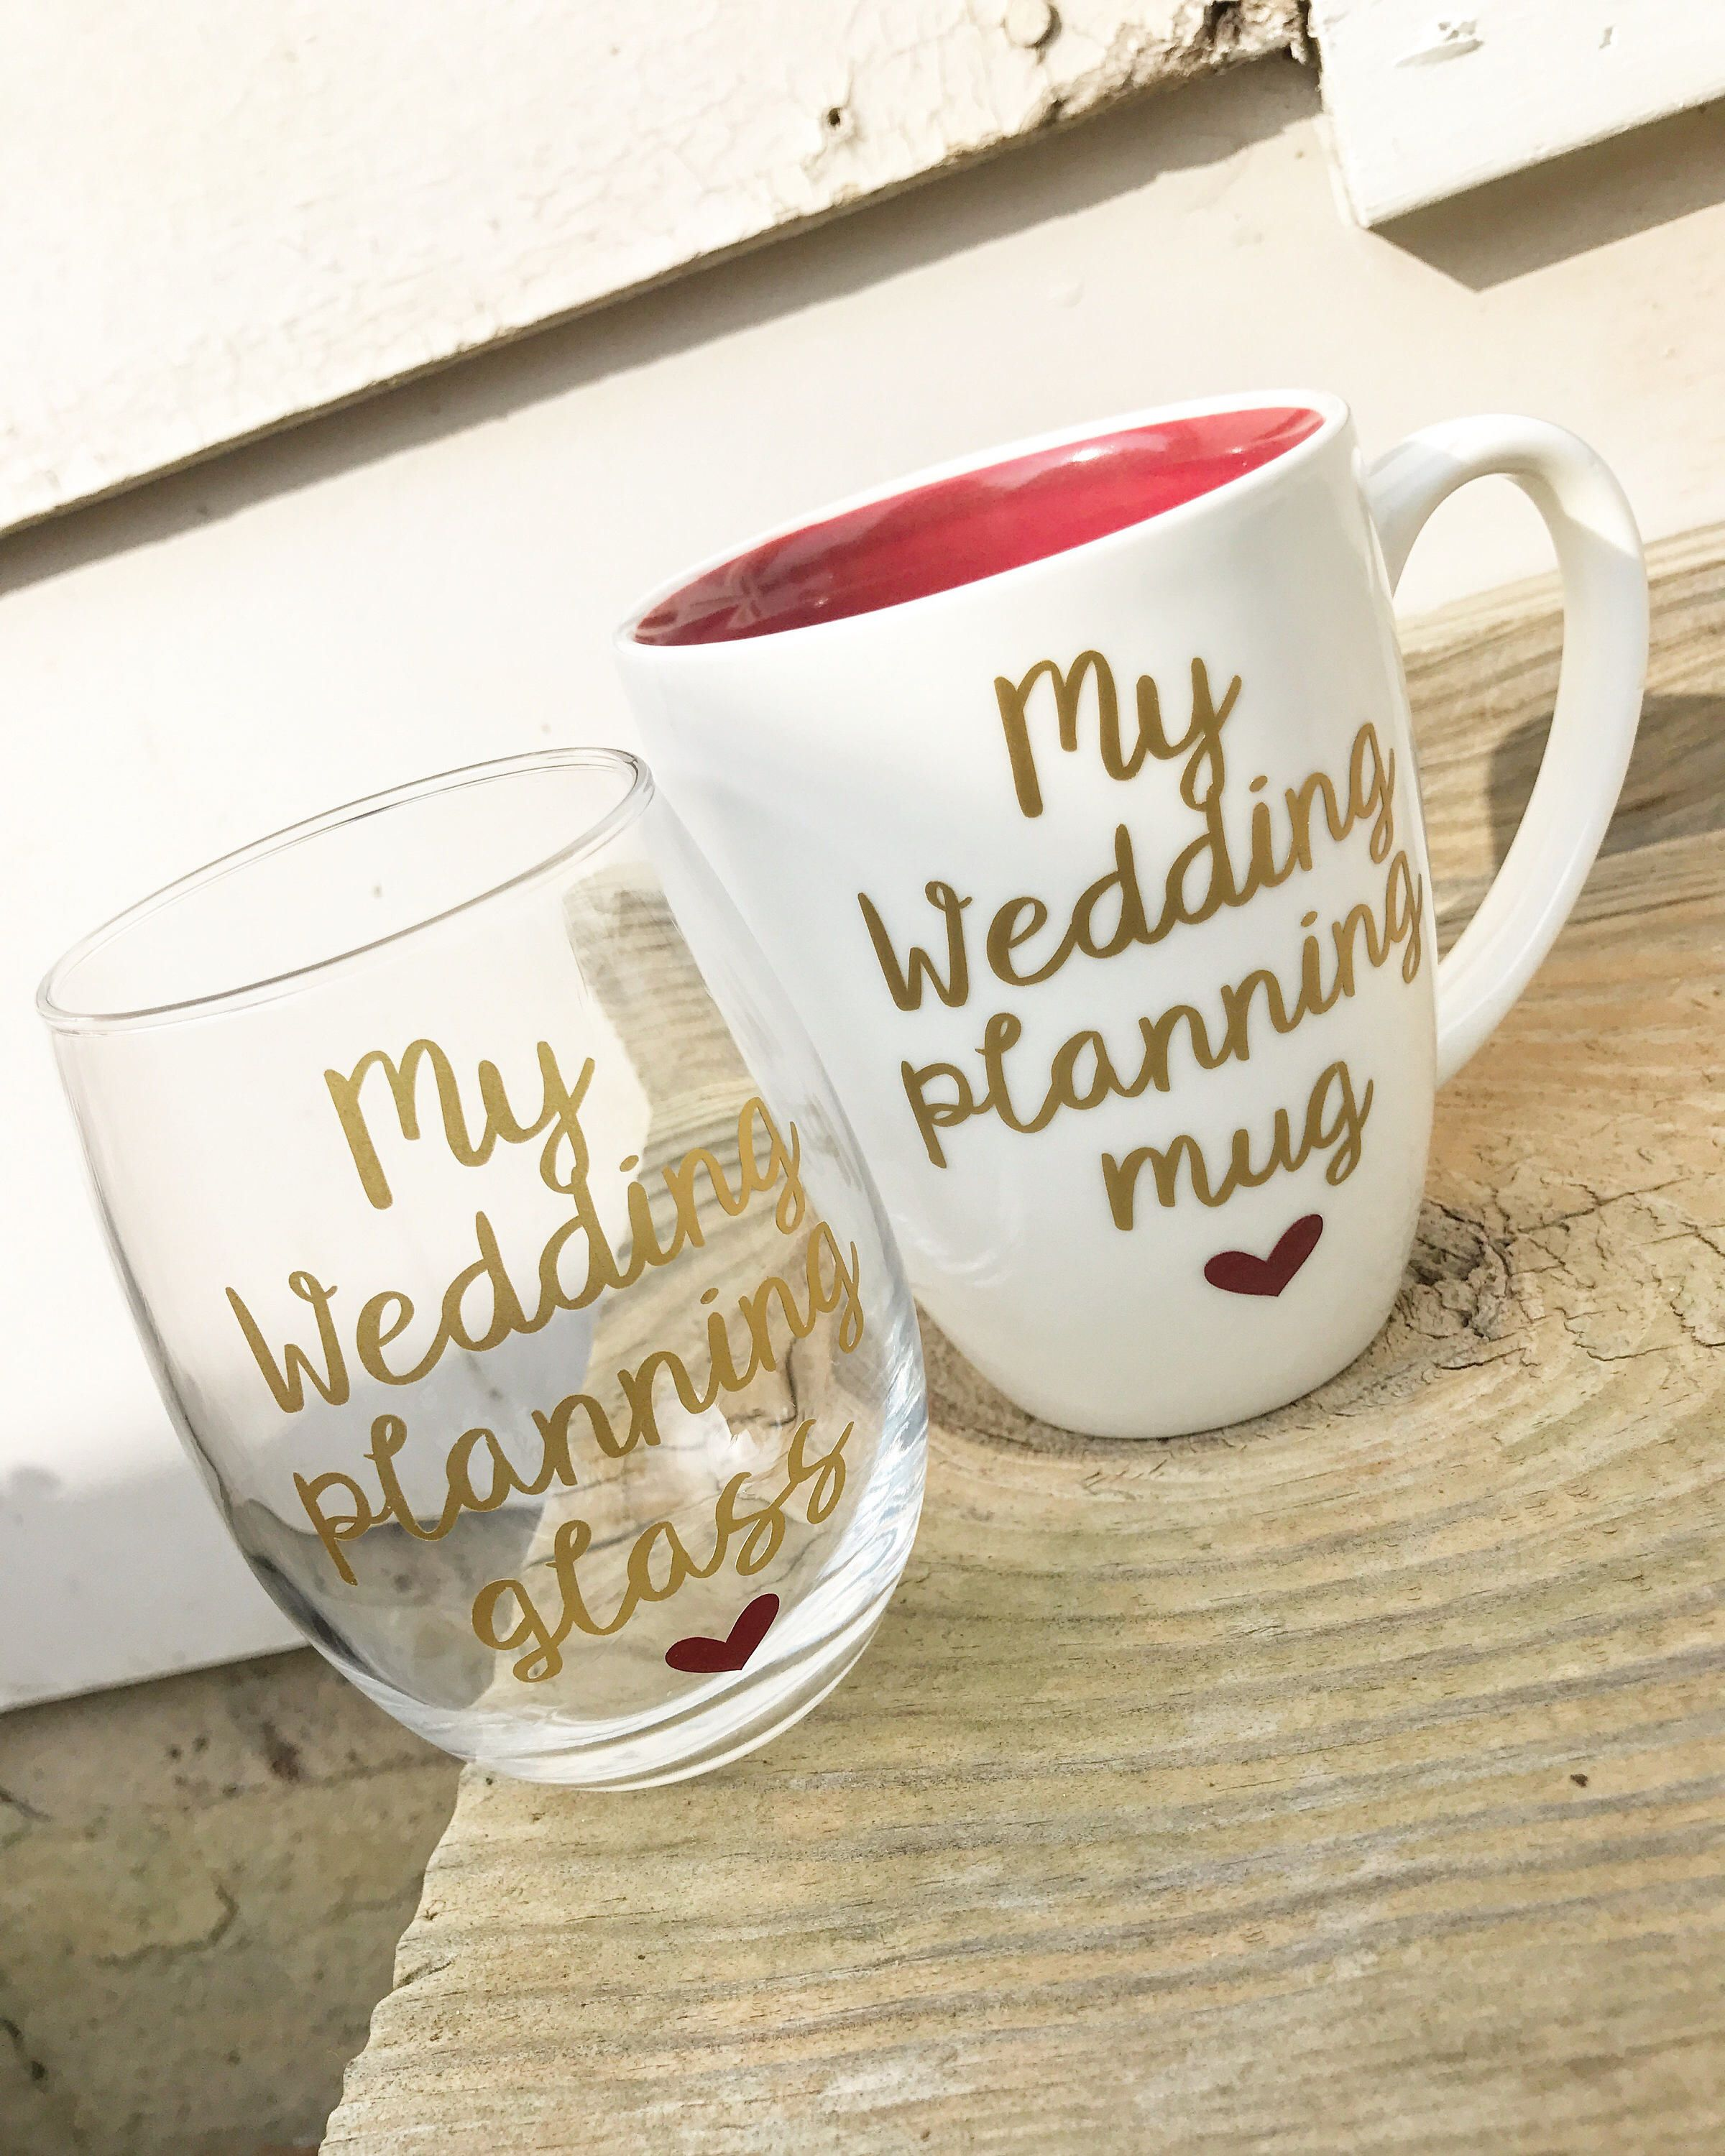 Wedding Gift For Acquaintance: Wedding Planning Glass, Engagement Gift, Engagement Gifts